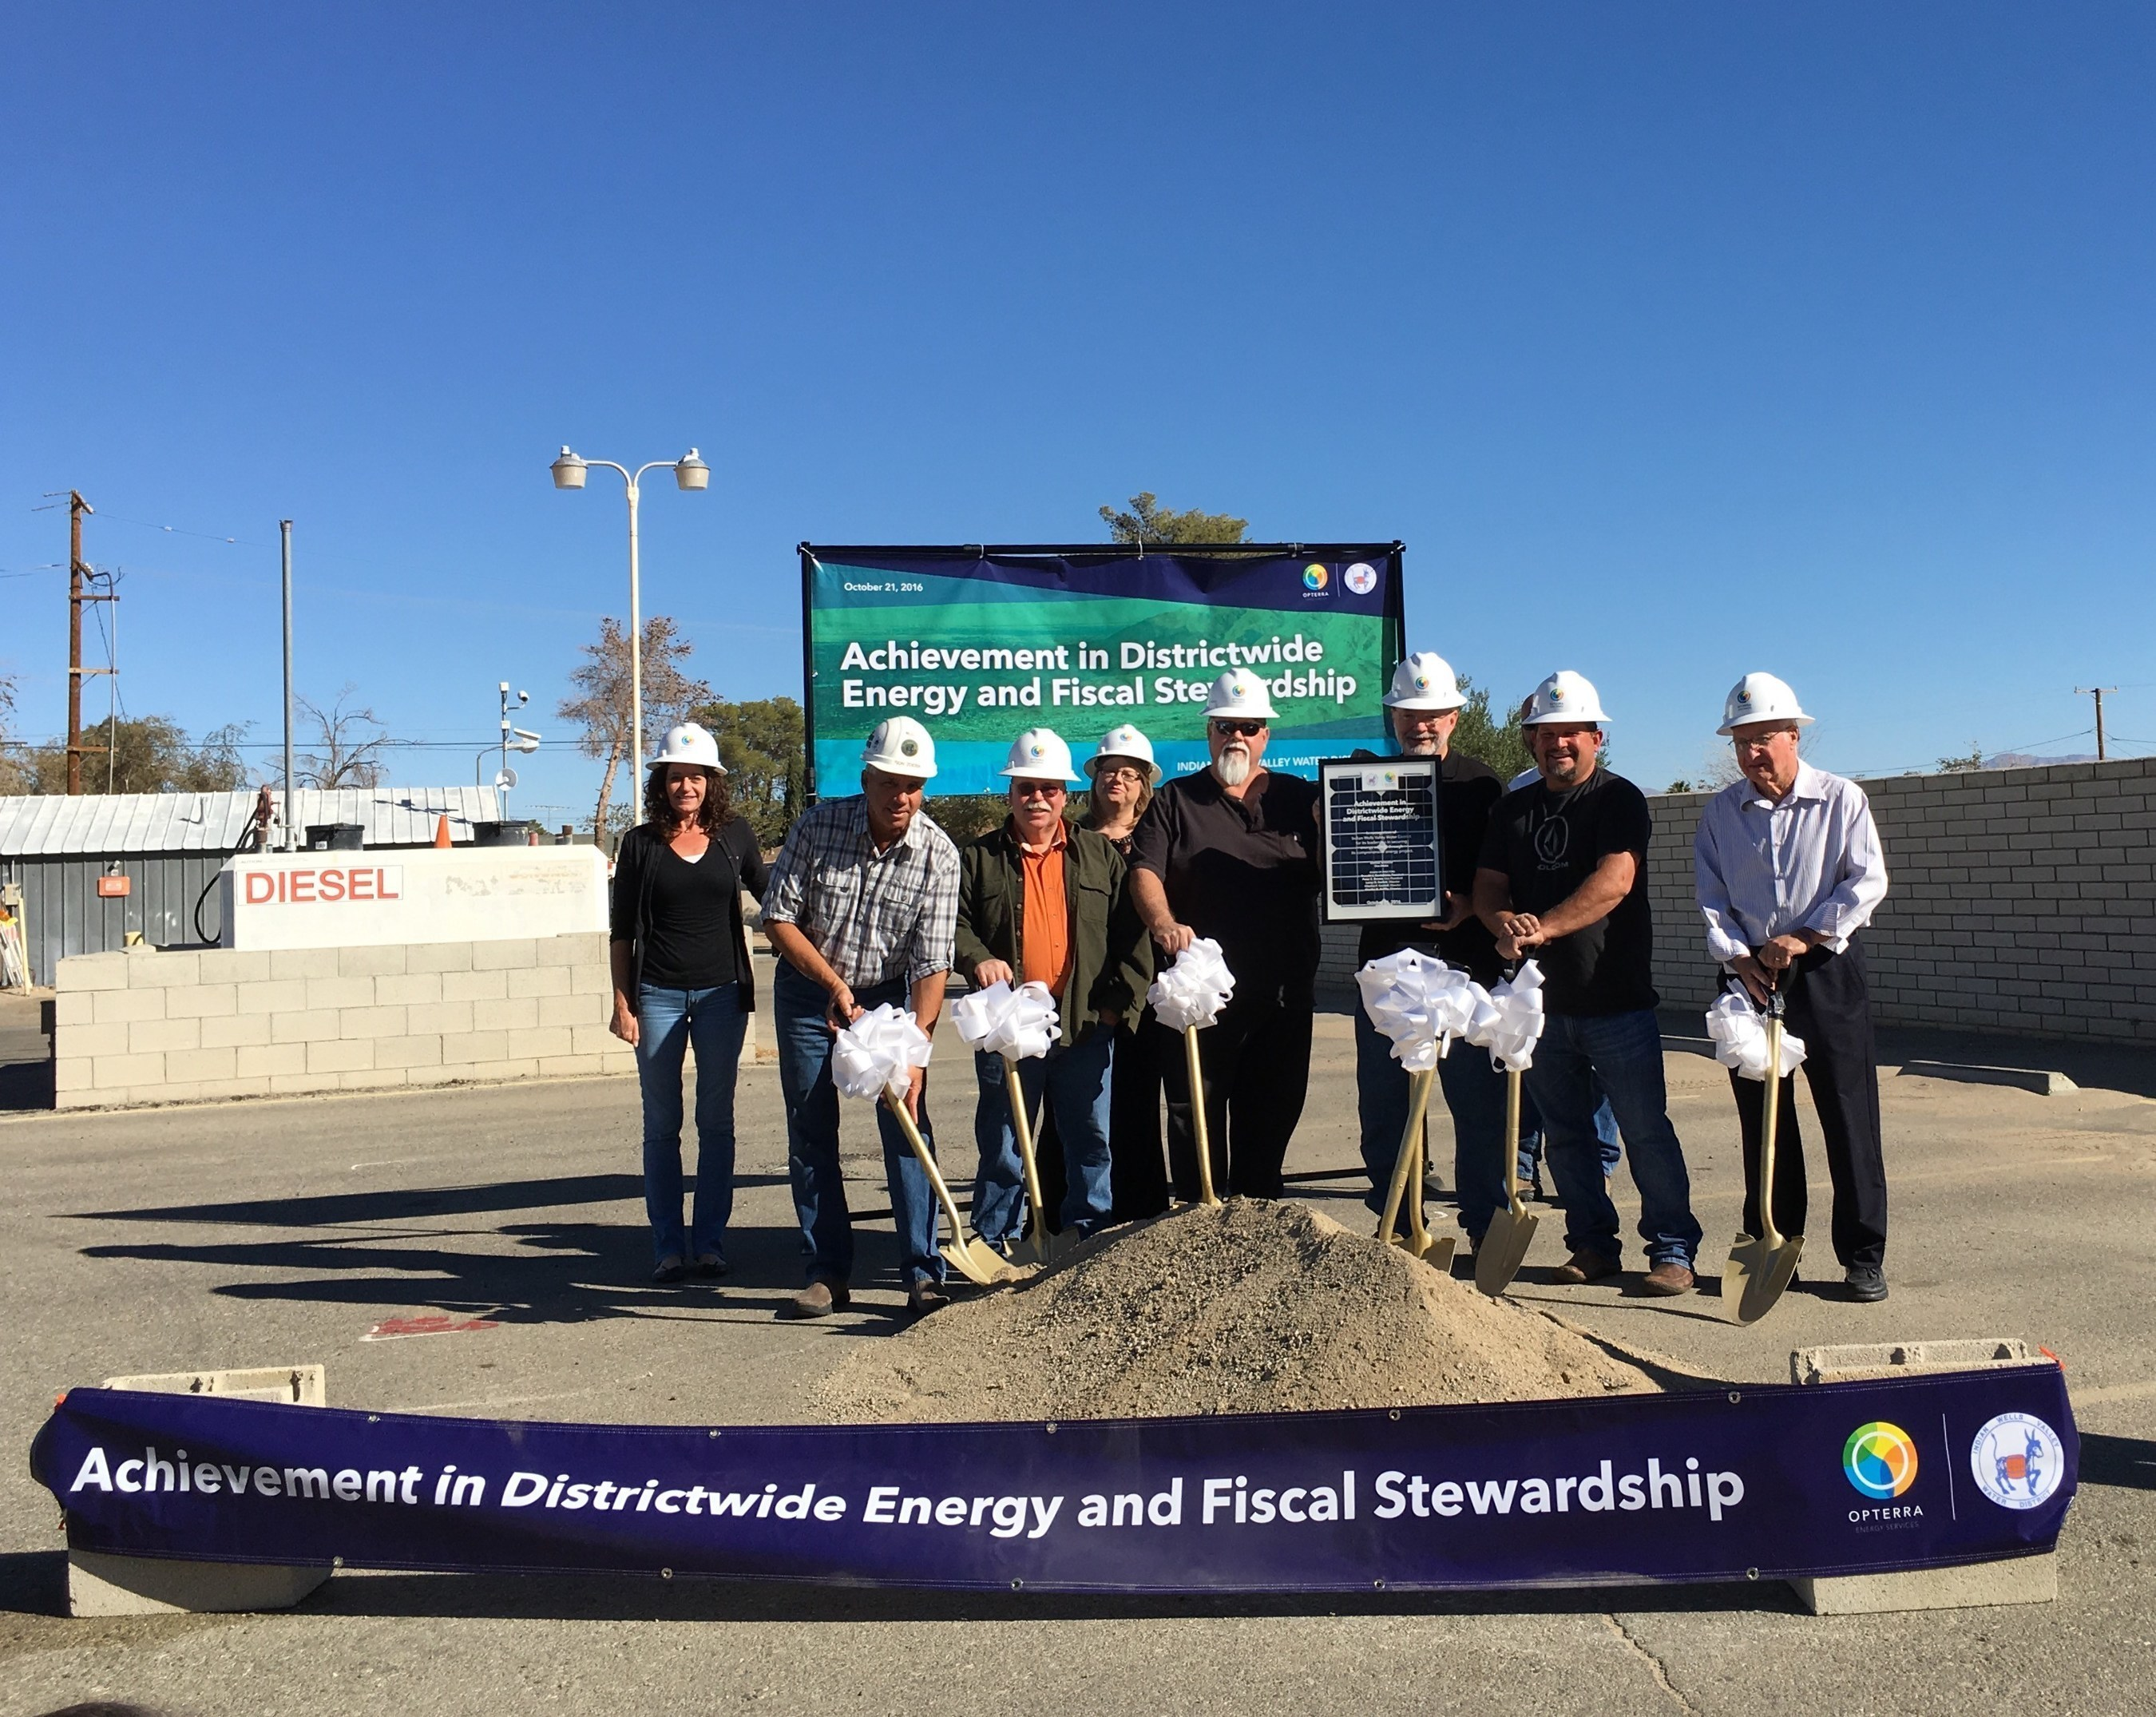 Leaders from the Indian Wells Valley Water District break ground on the beginning of a comprehensive energy efficiency and solar program with OpTerra Energy Services. The community celebration was held on Friday, October 21st, 2016.